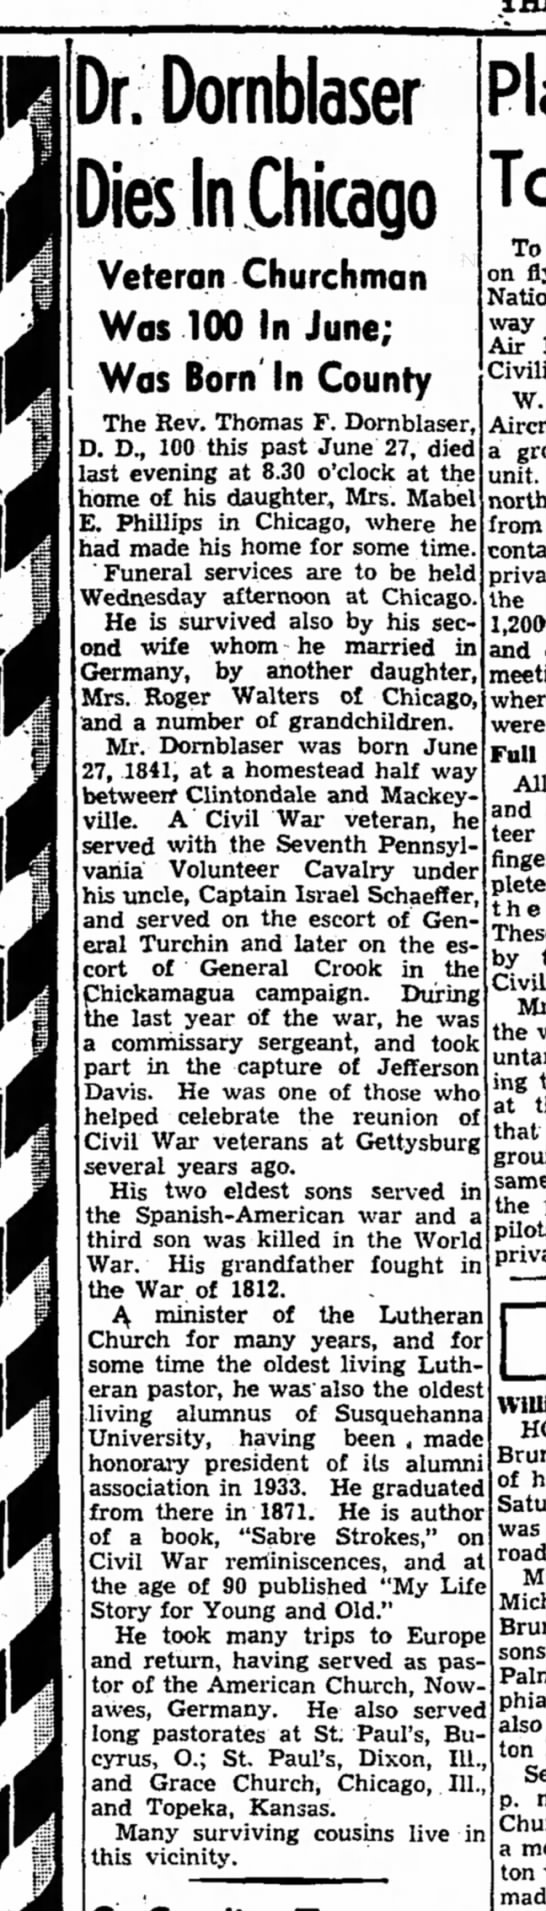 Lock Haven, PA - The Express •  22 December 1941 •  Page 8